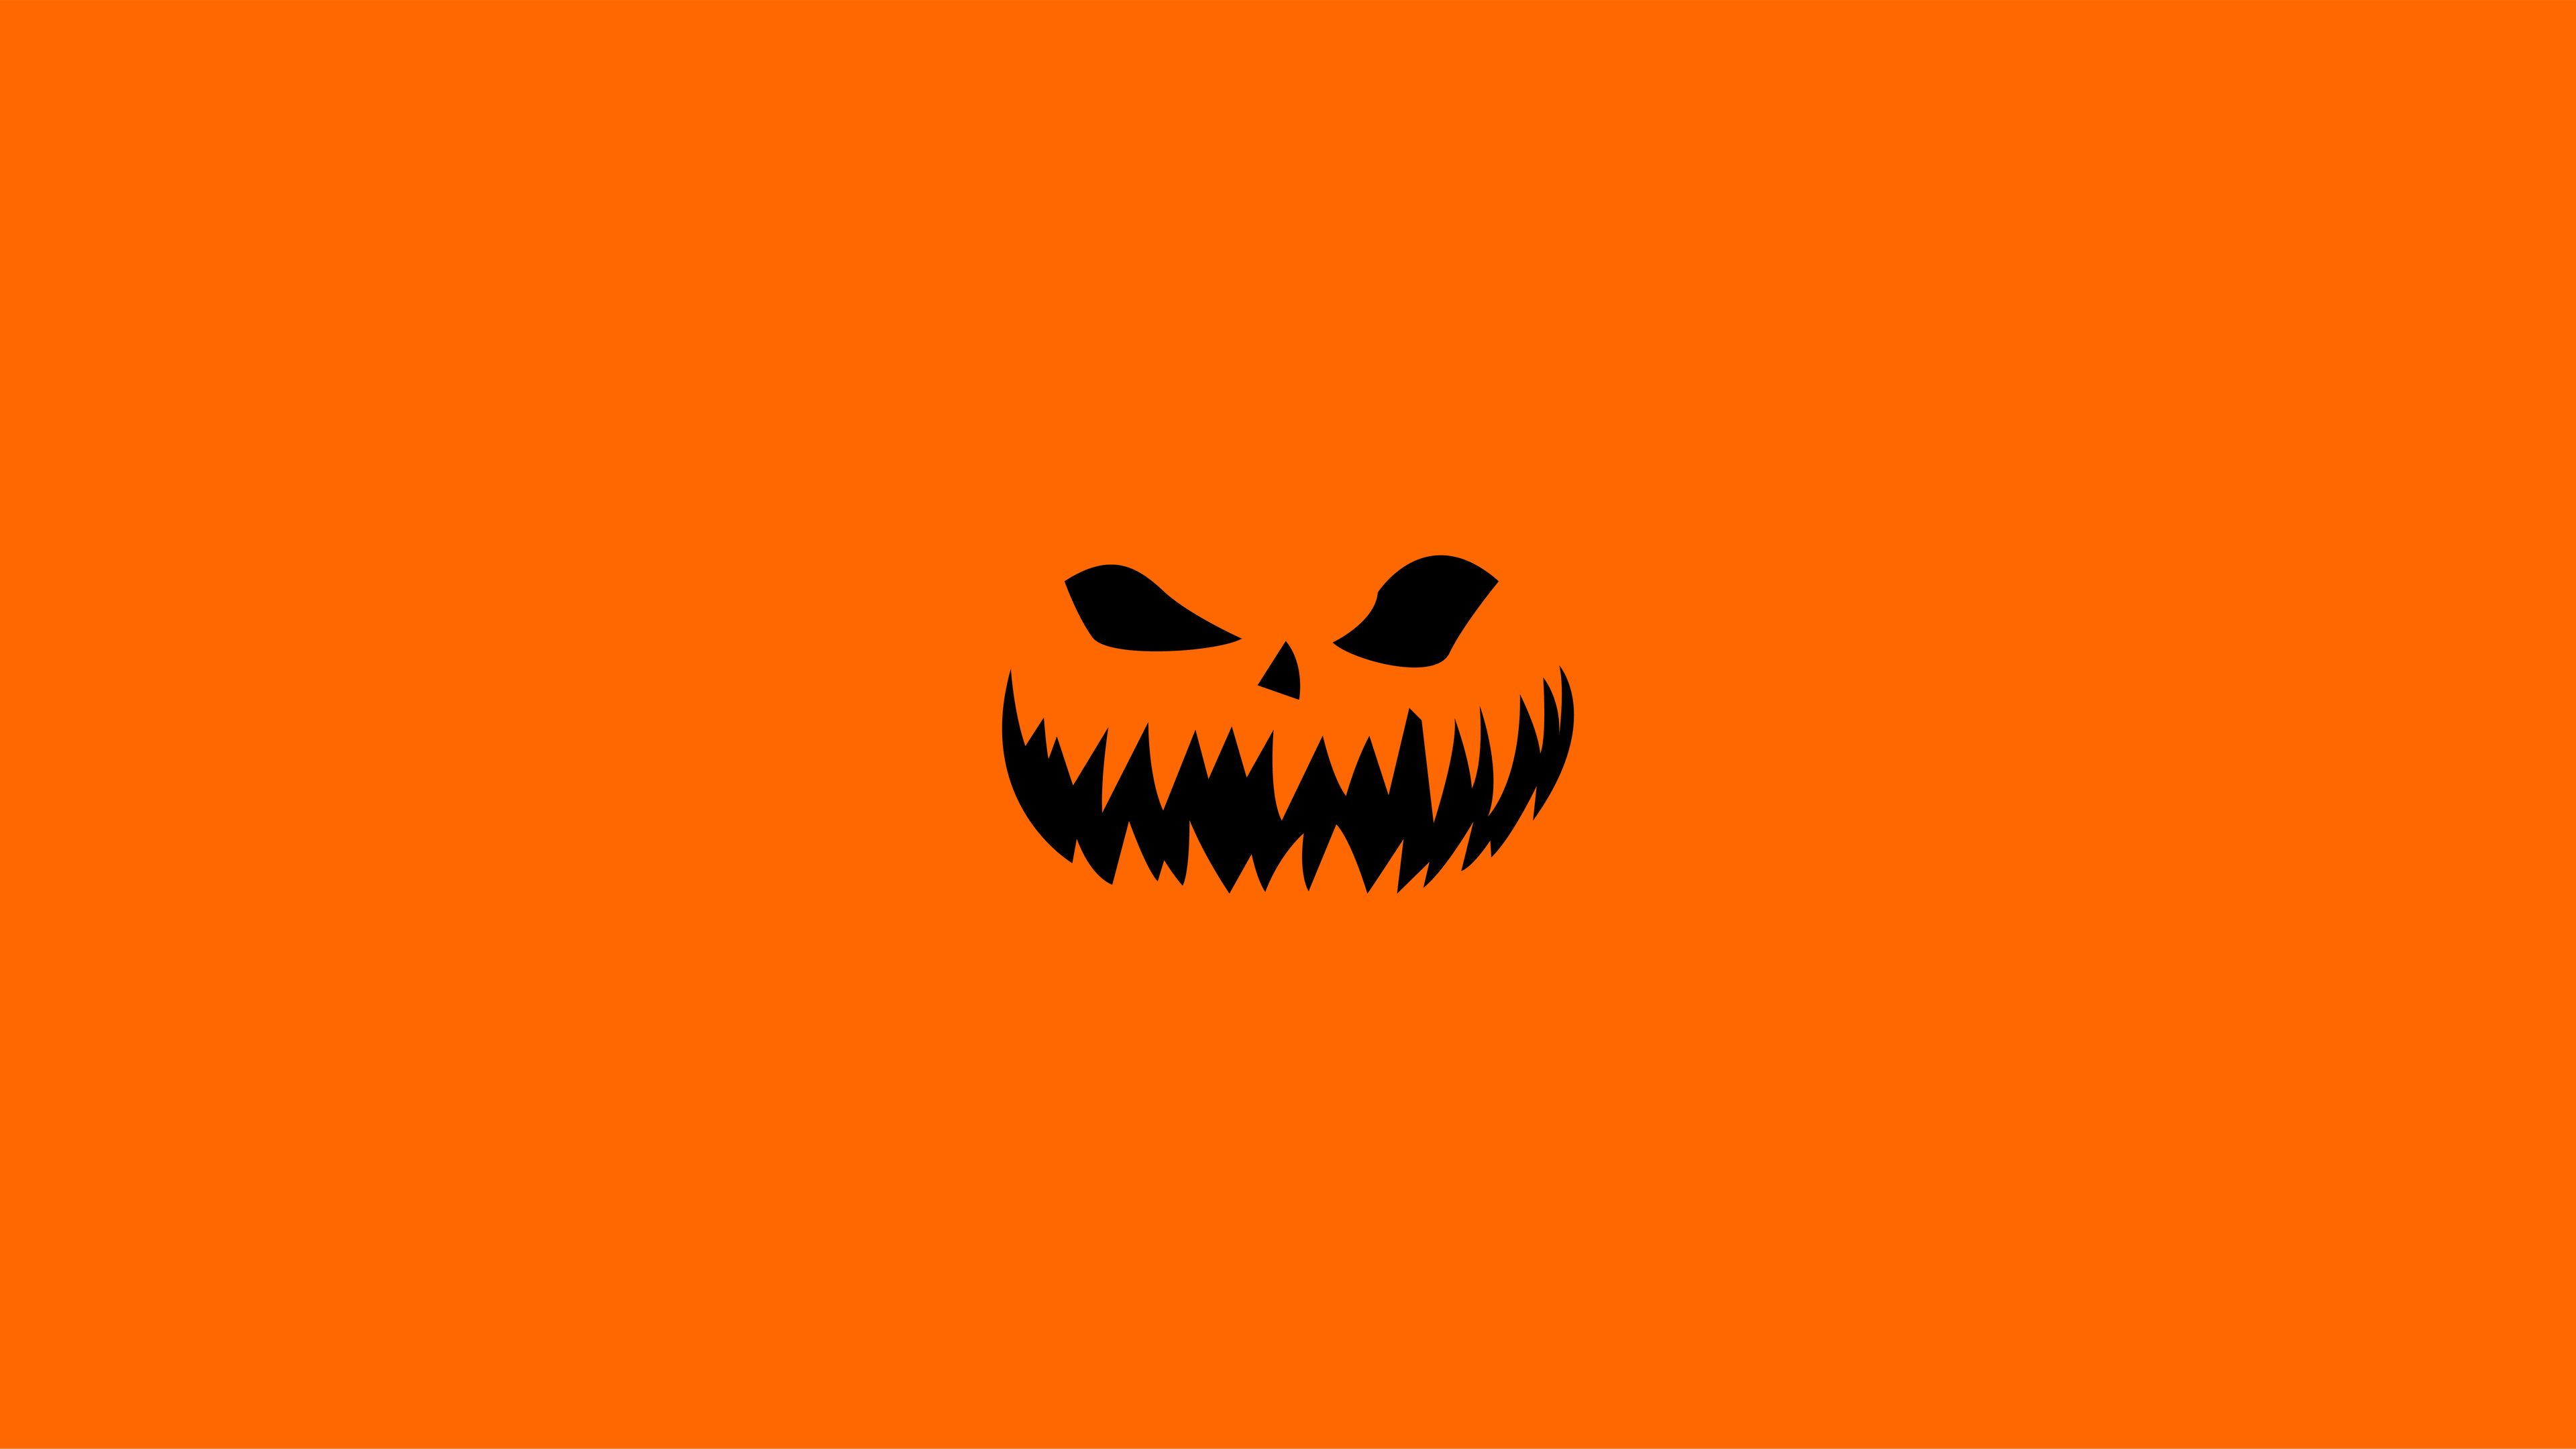 Halloween 4k 2019 Holidays Wallpapers Hd Wallpapers Halloween Wallpapers Celebrations Wallpapers 8k Wall Halloween Wallpaper Holiday Wallpaper 8k Wallpaper